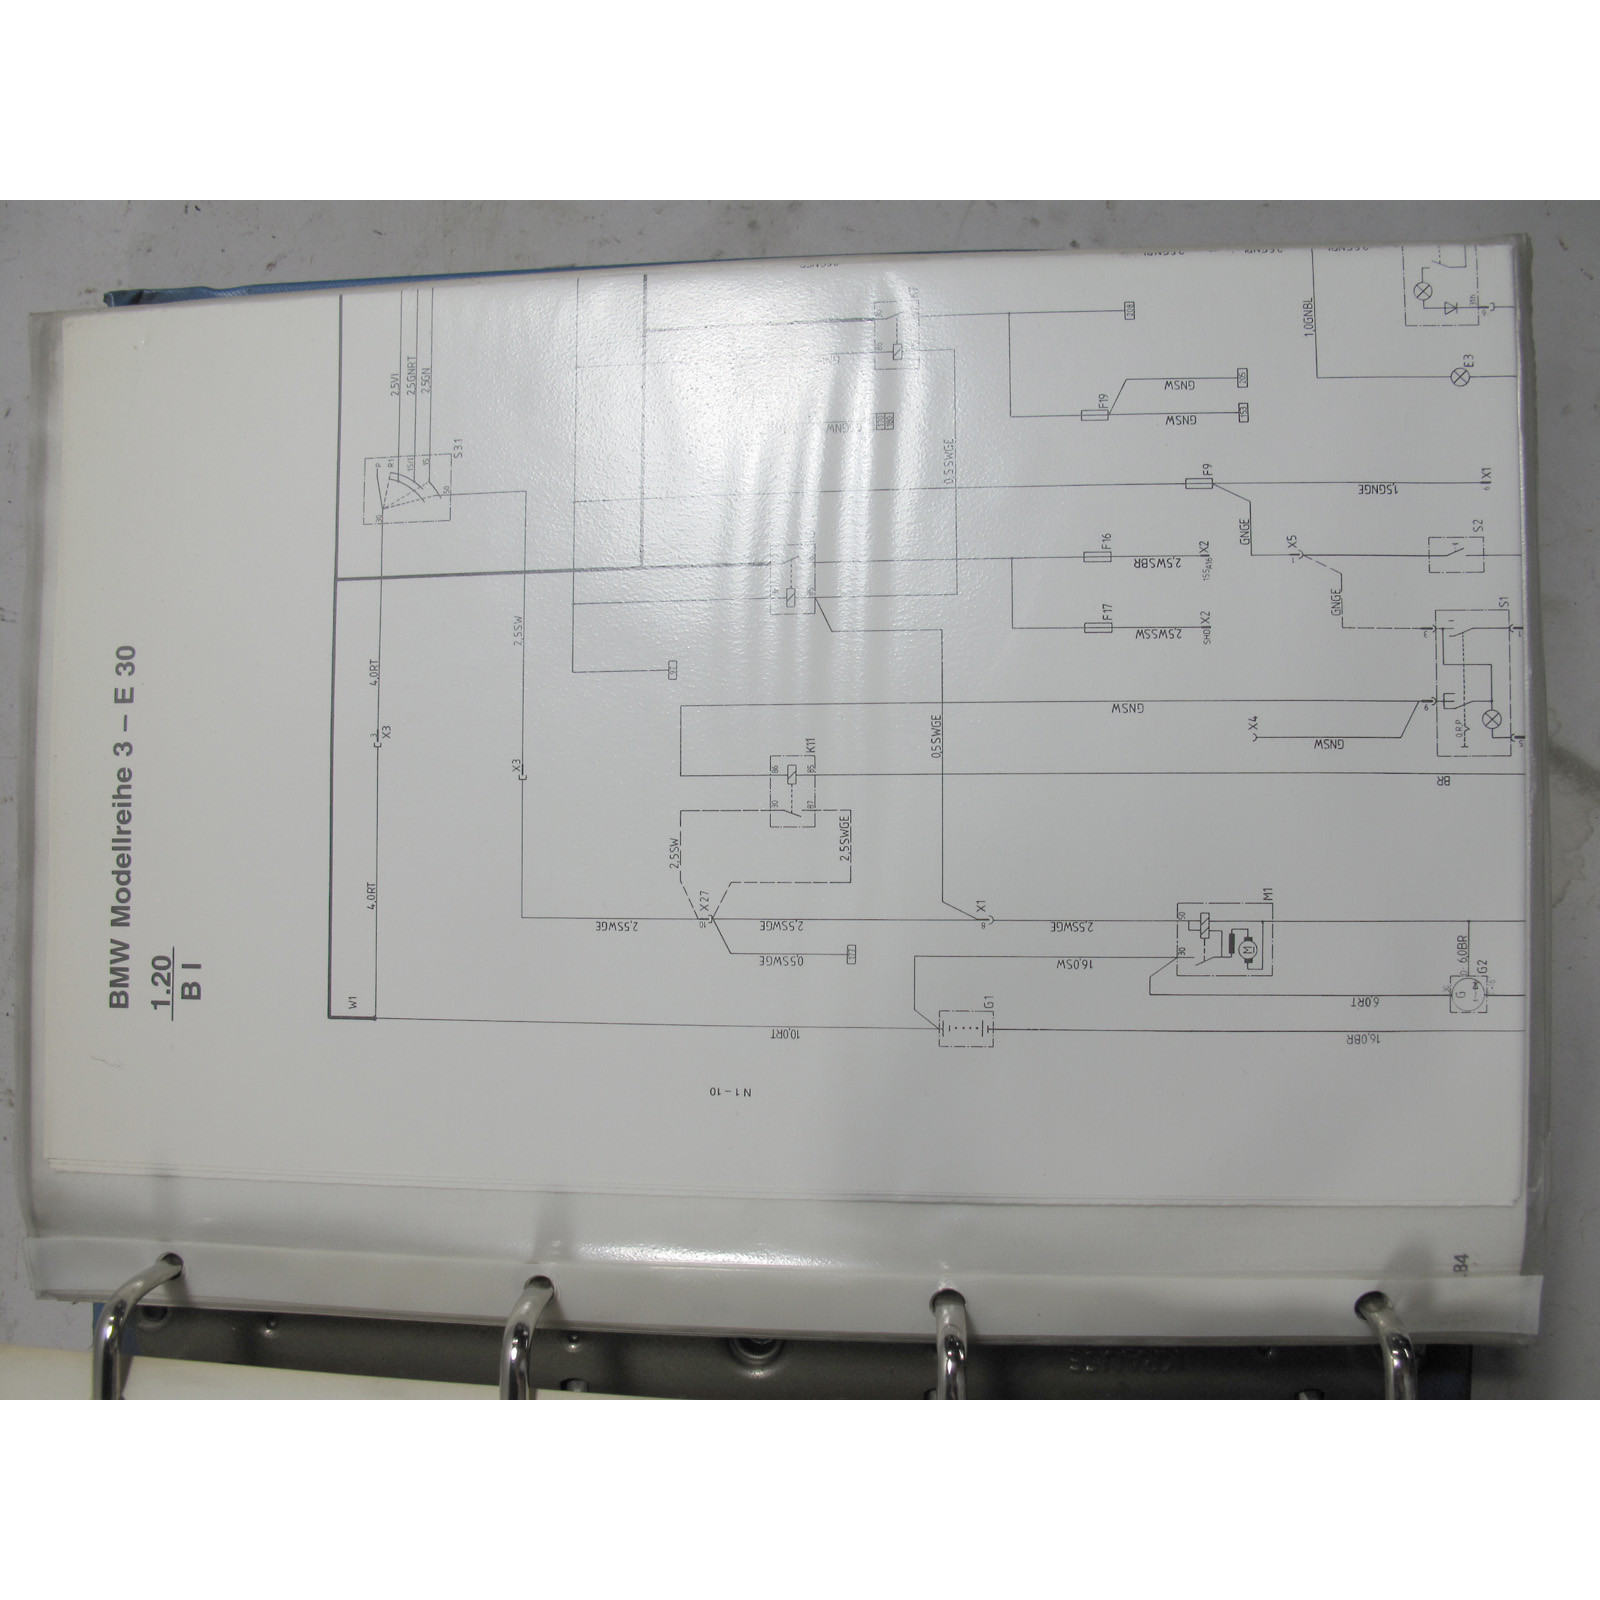 hight resolution of bmw e30 3 series general electrical system wiring diagram service bmw 2 series electrical system and wiring